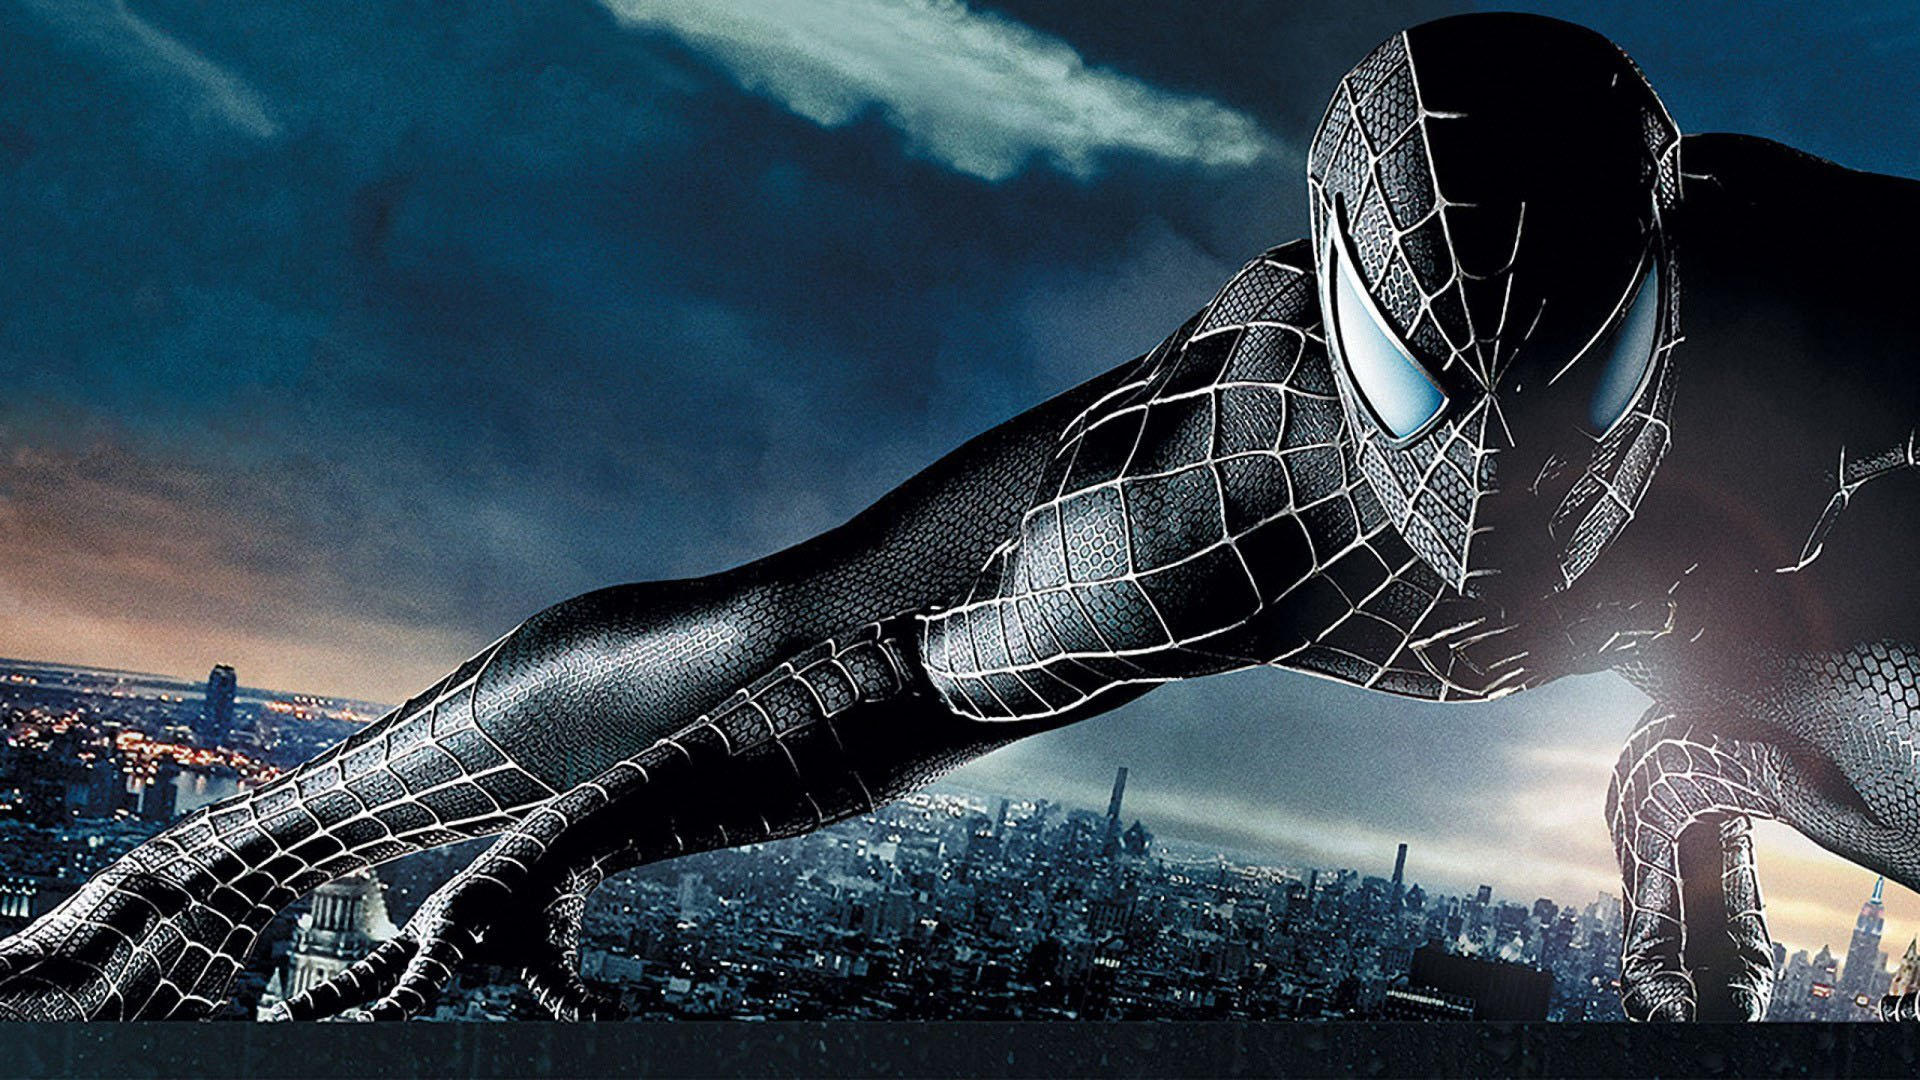 Spider man 3 images hd free download game - Spider hd images download ...